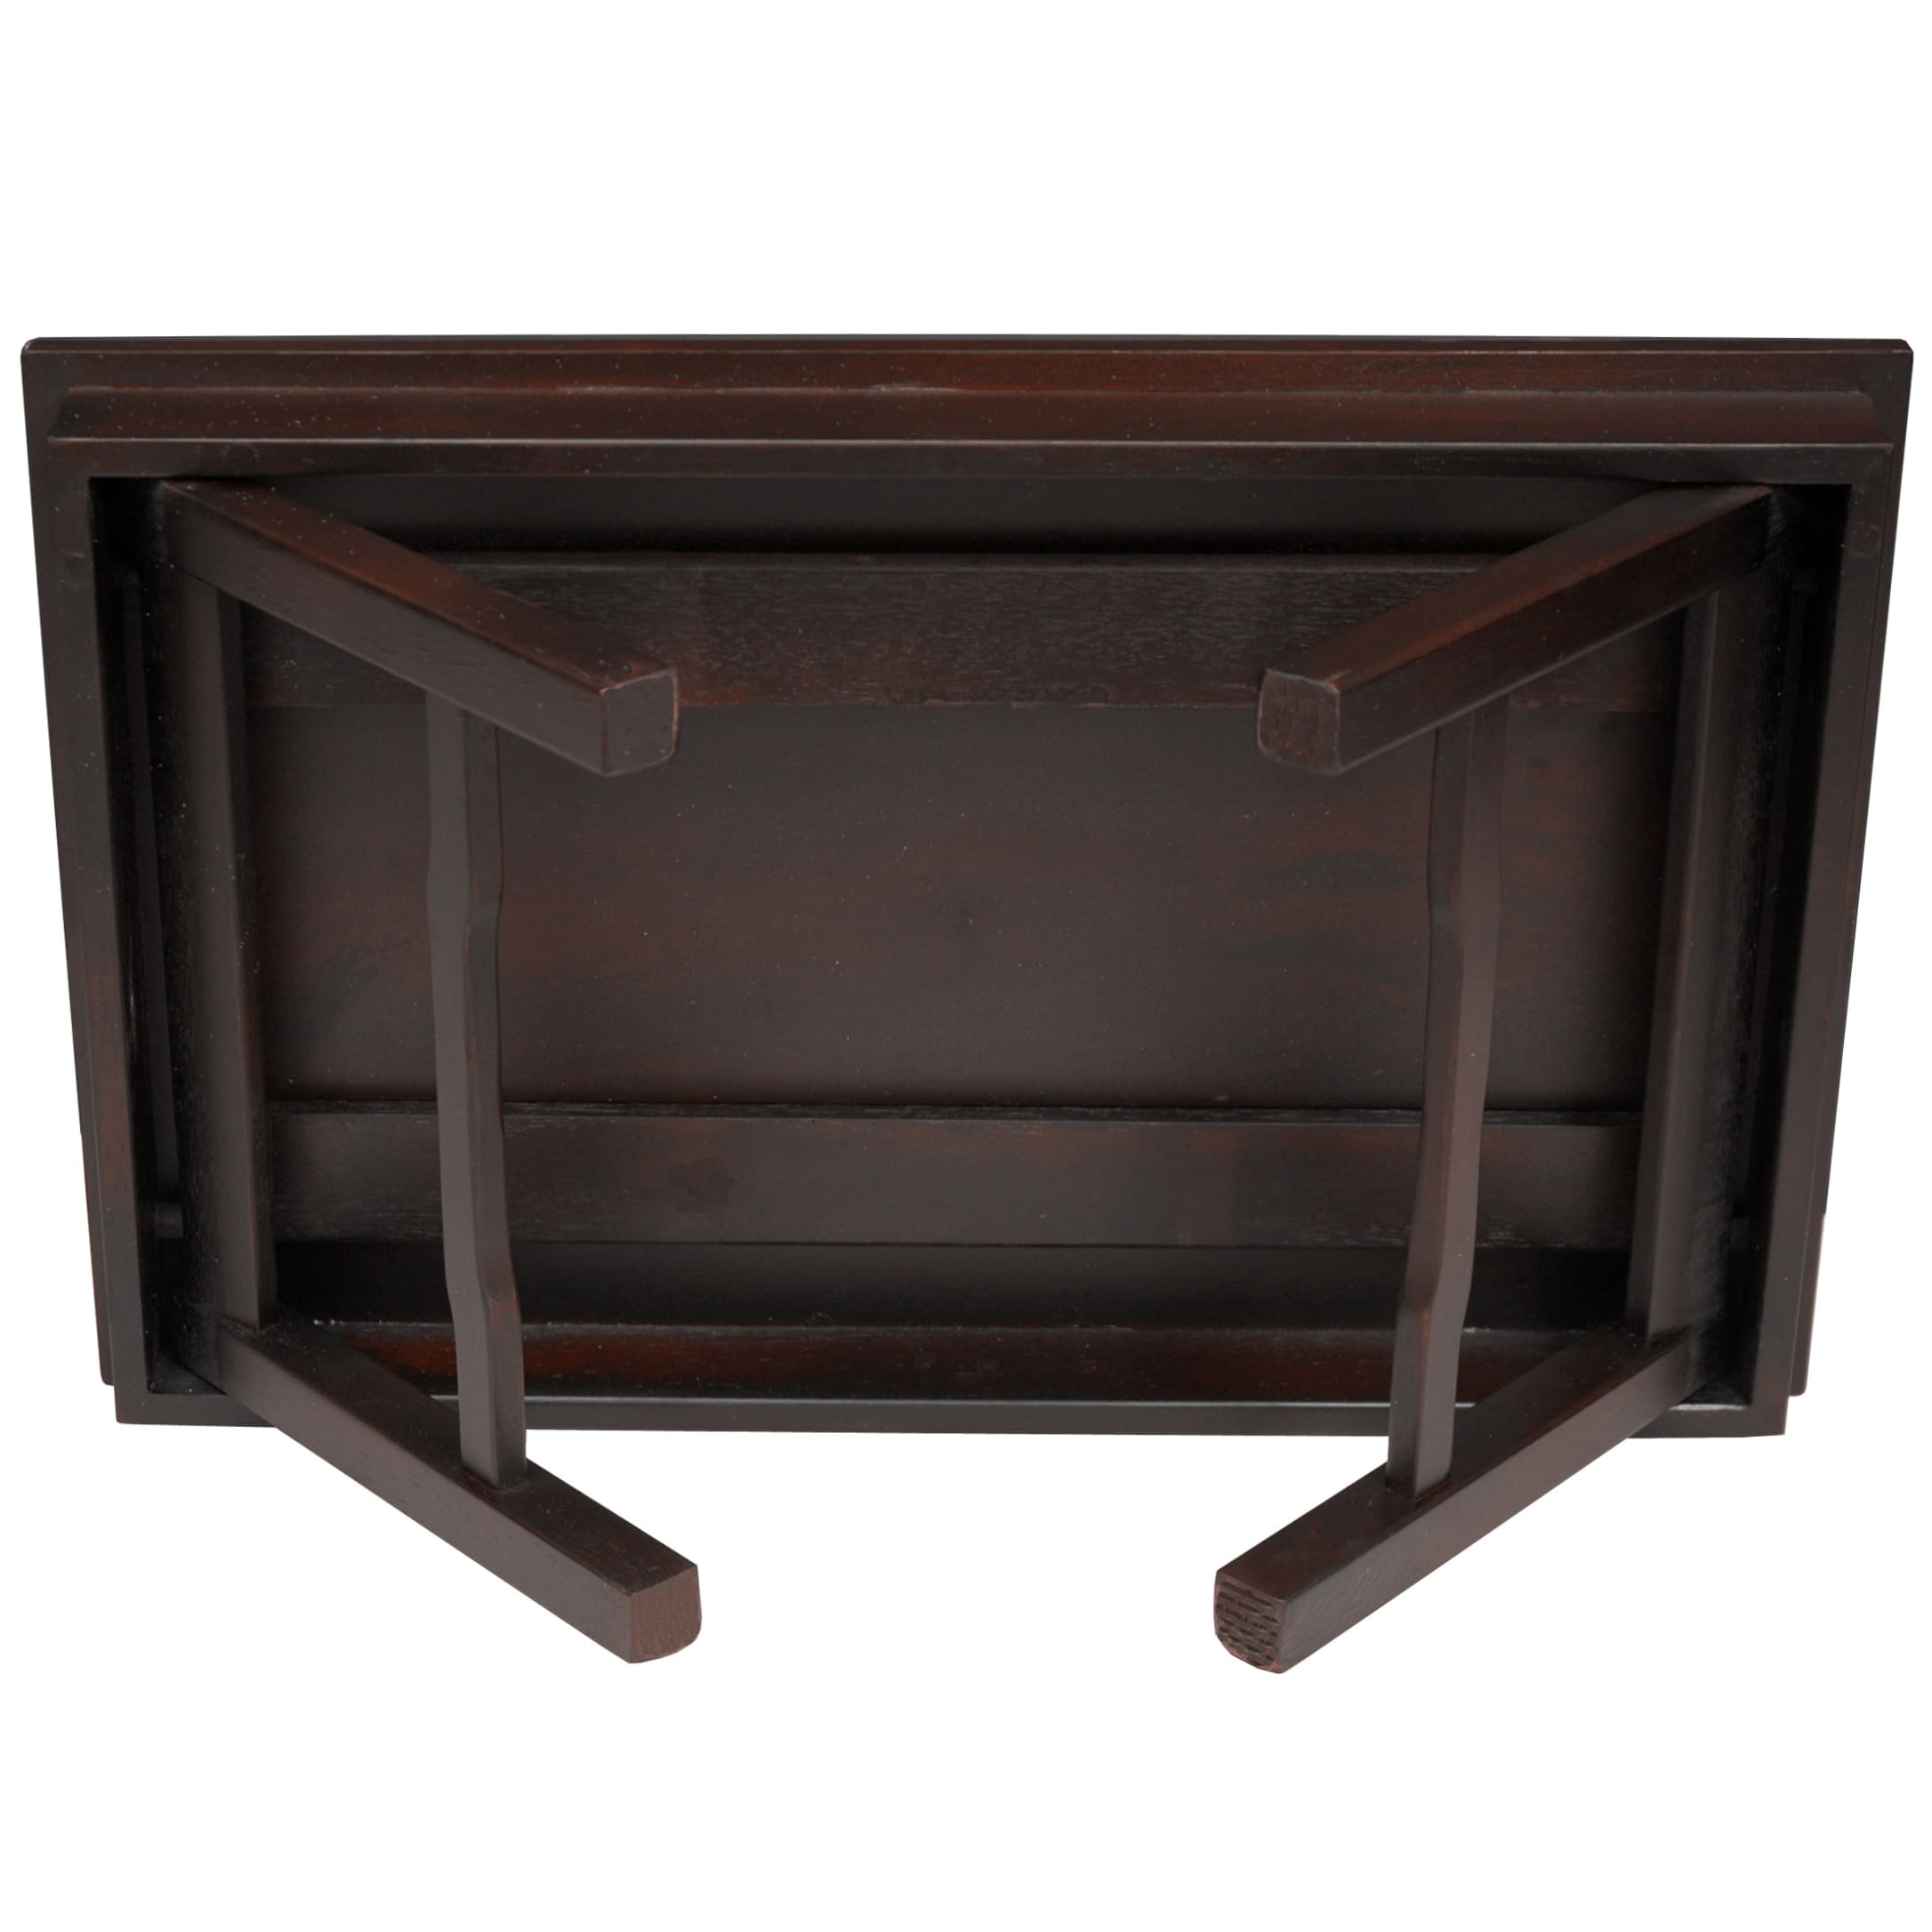 Shop Handmade Korean Style Small Coffee Table (China)   Free Shipping Today    Overstock.com   1433601